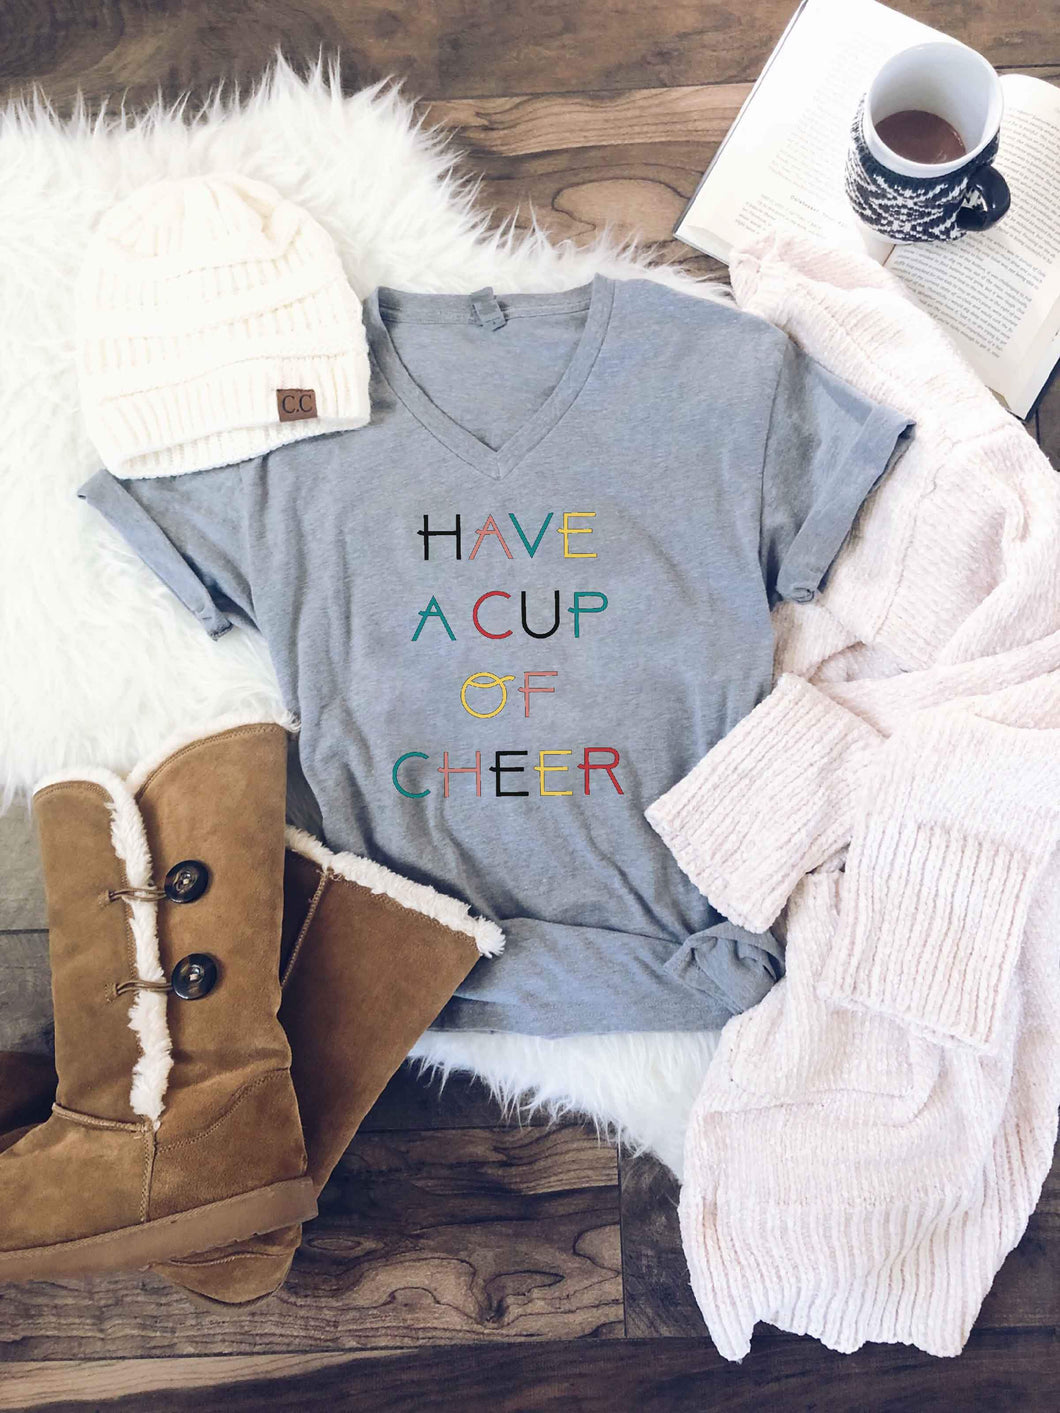 Have a cup of cheer heather grey Next Level 6210 Heather Grey